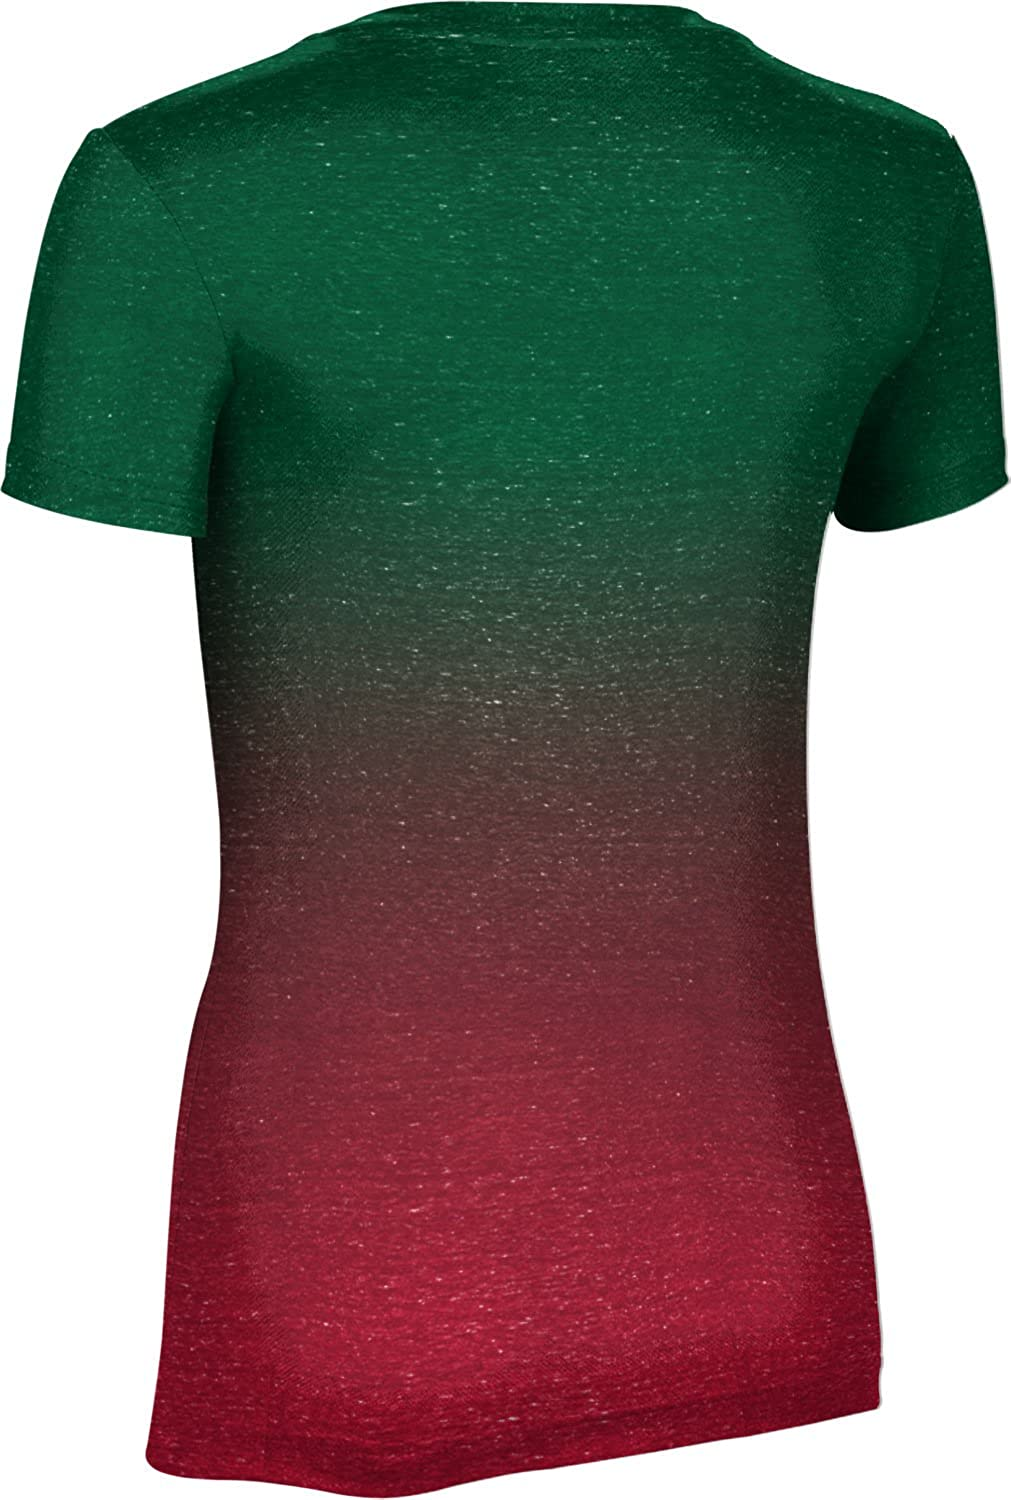 Ombre ProSphere Mississippi Valley State University Girls Performance T-Shirt